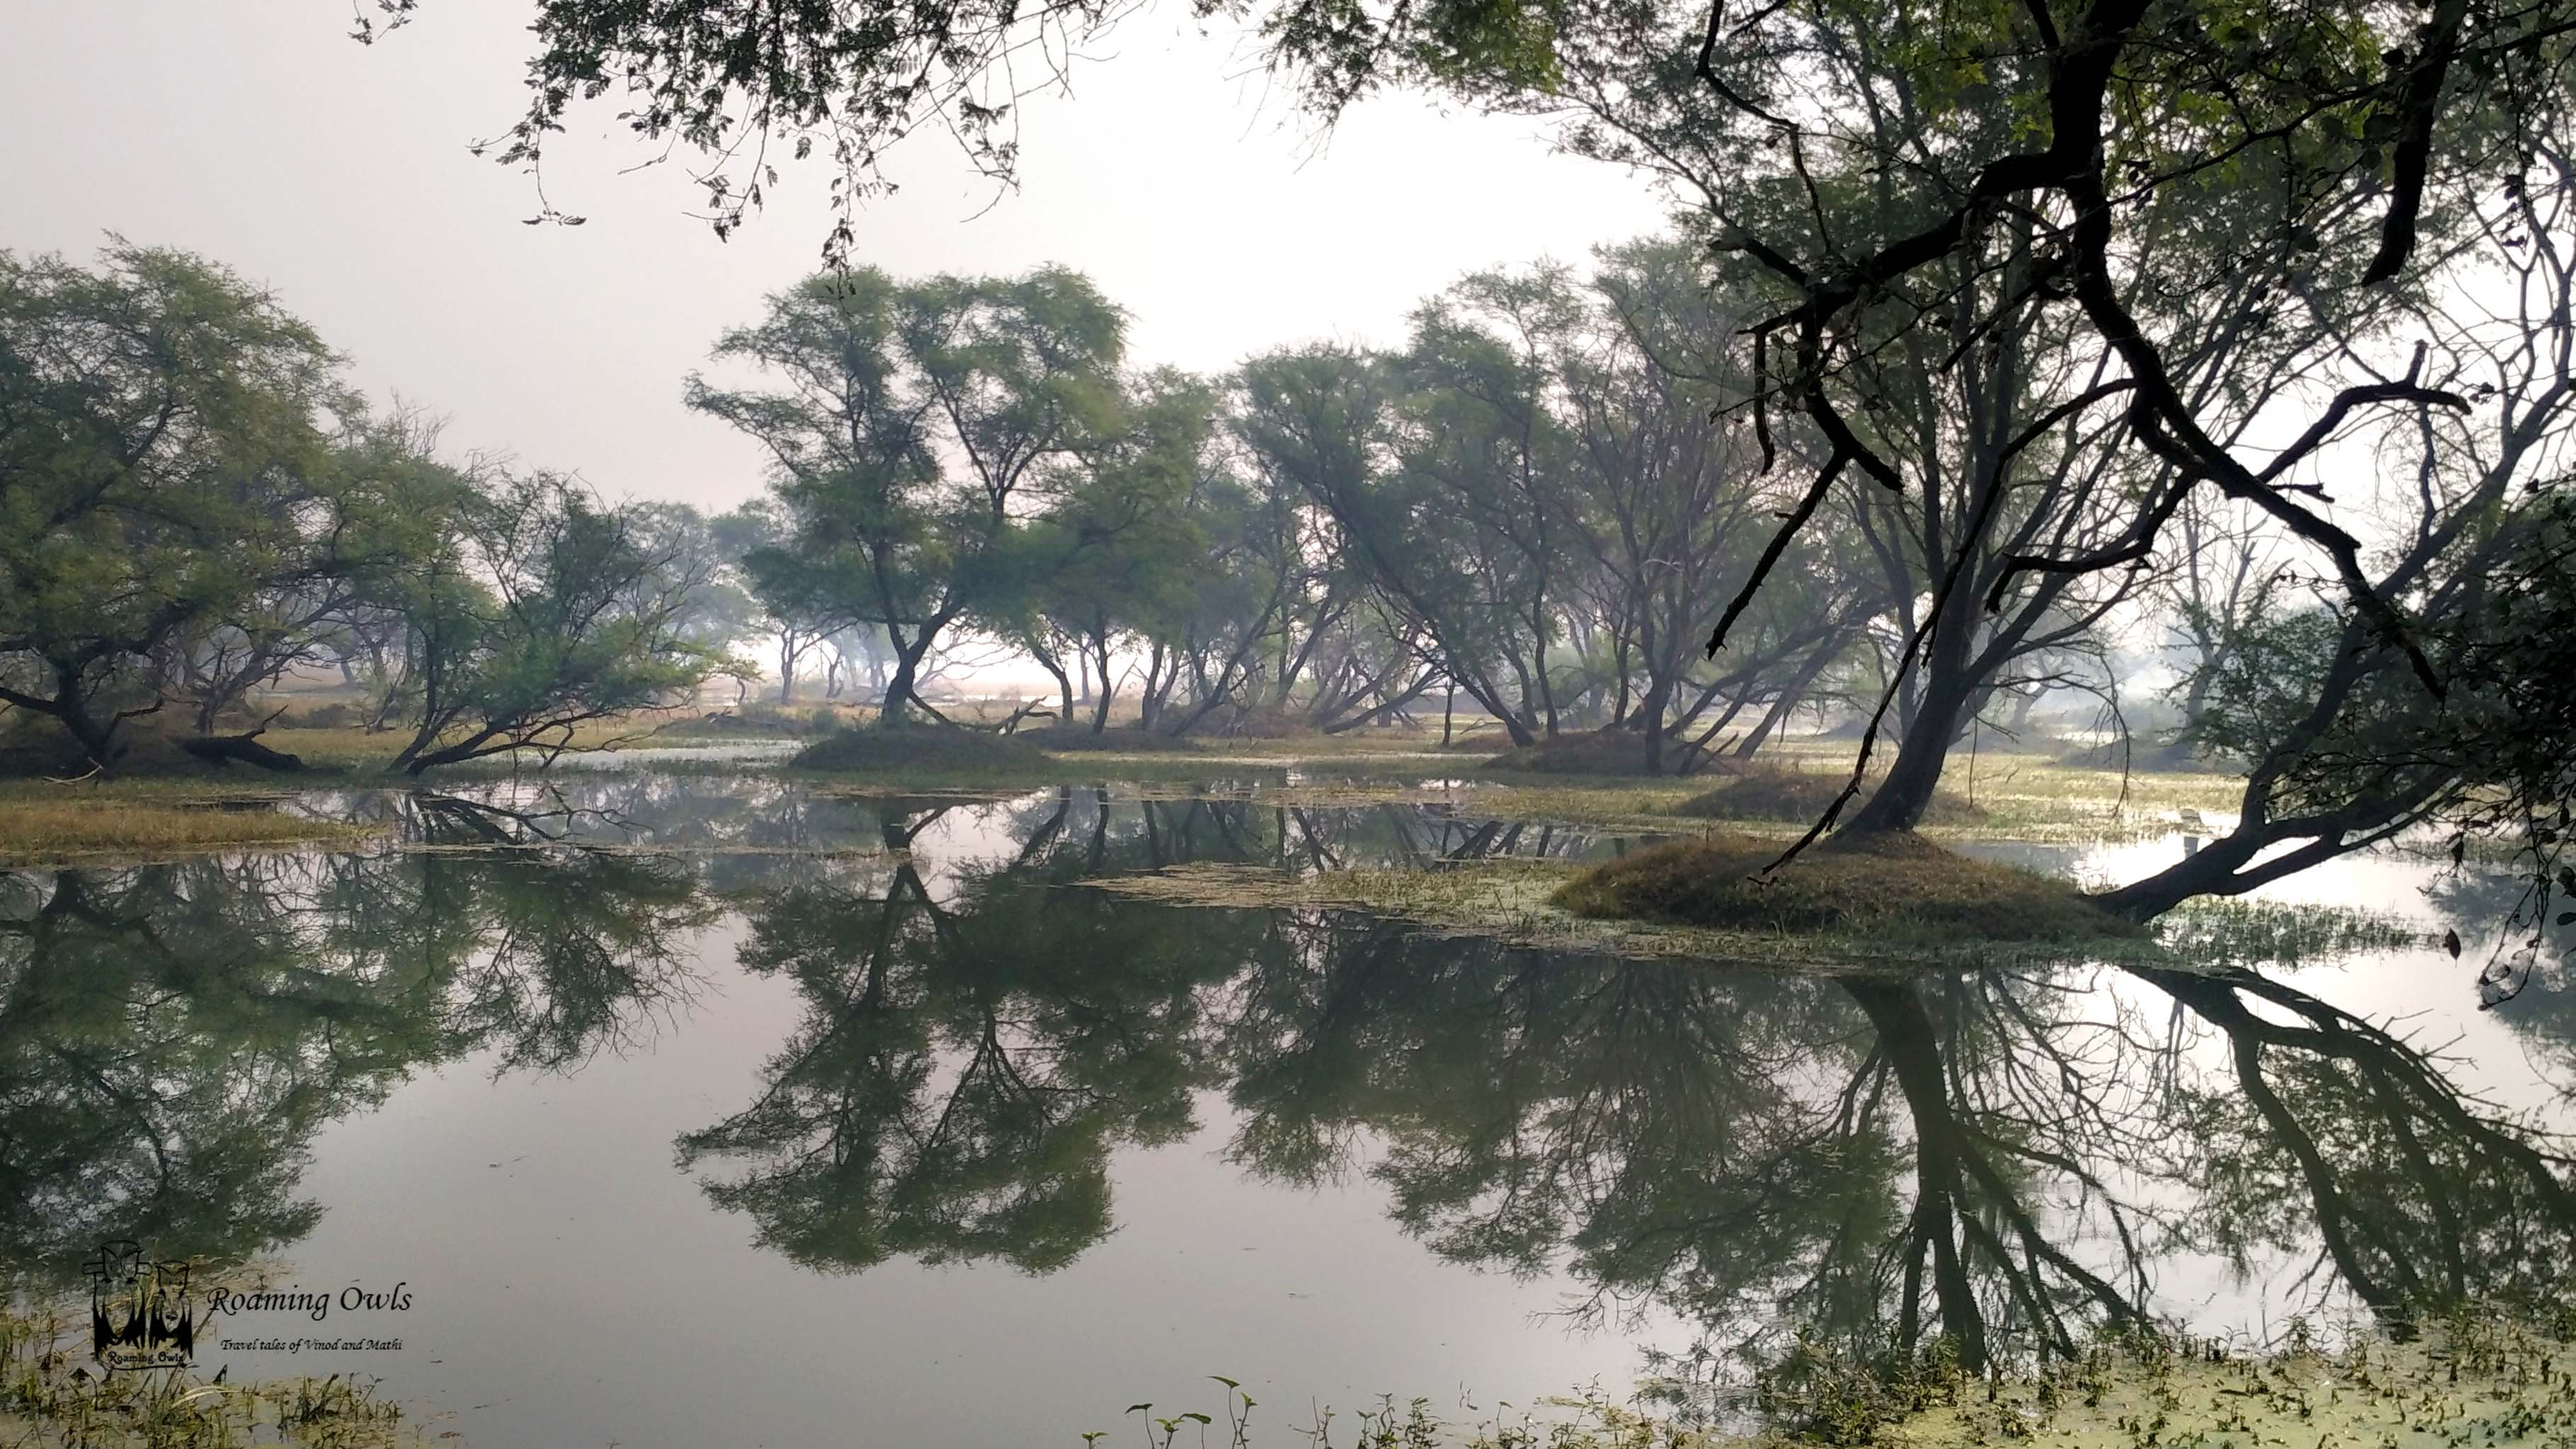 Keolodeo national park, bharatpur, india, wetlands